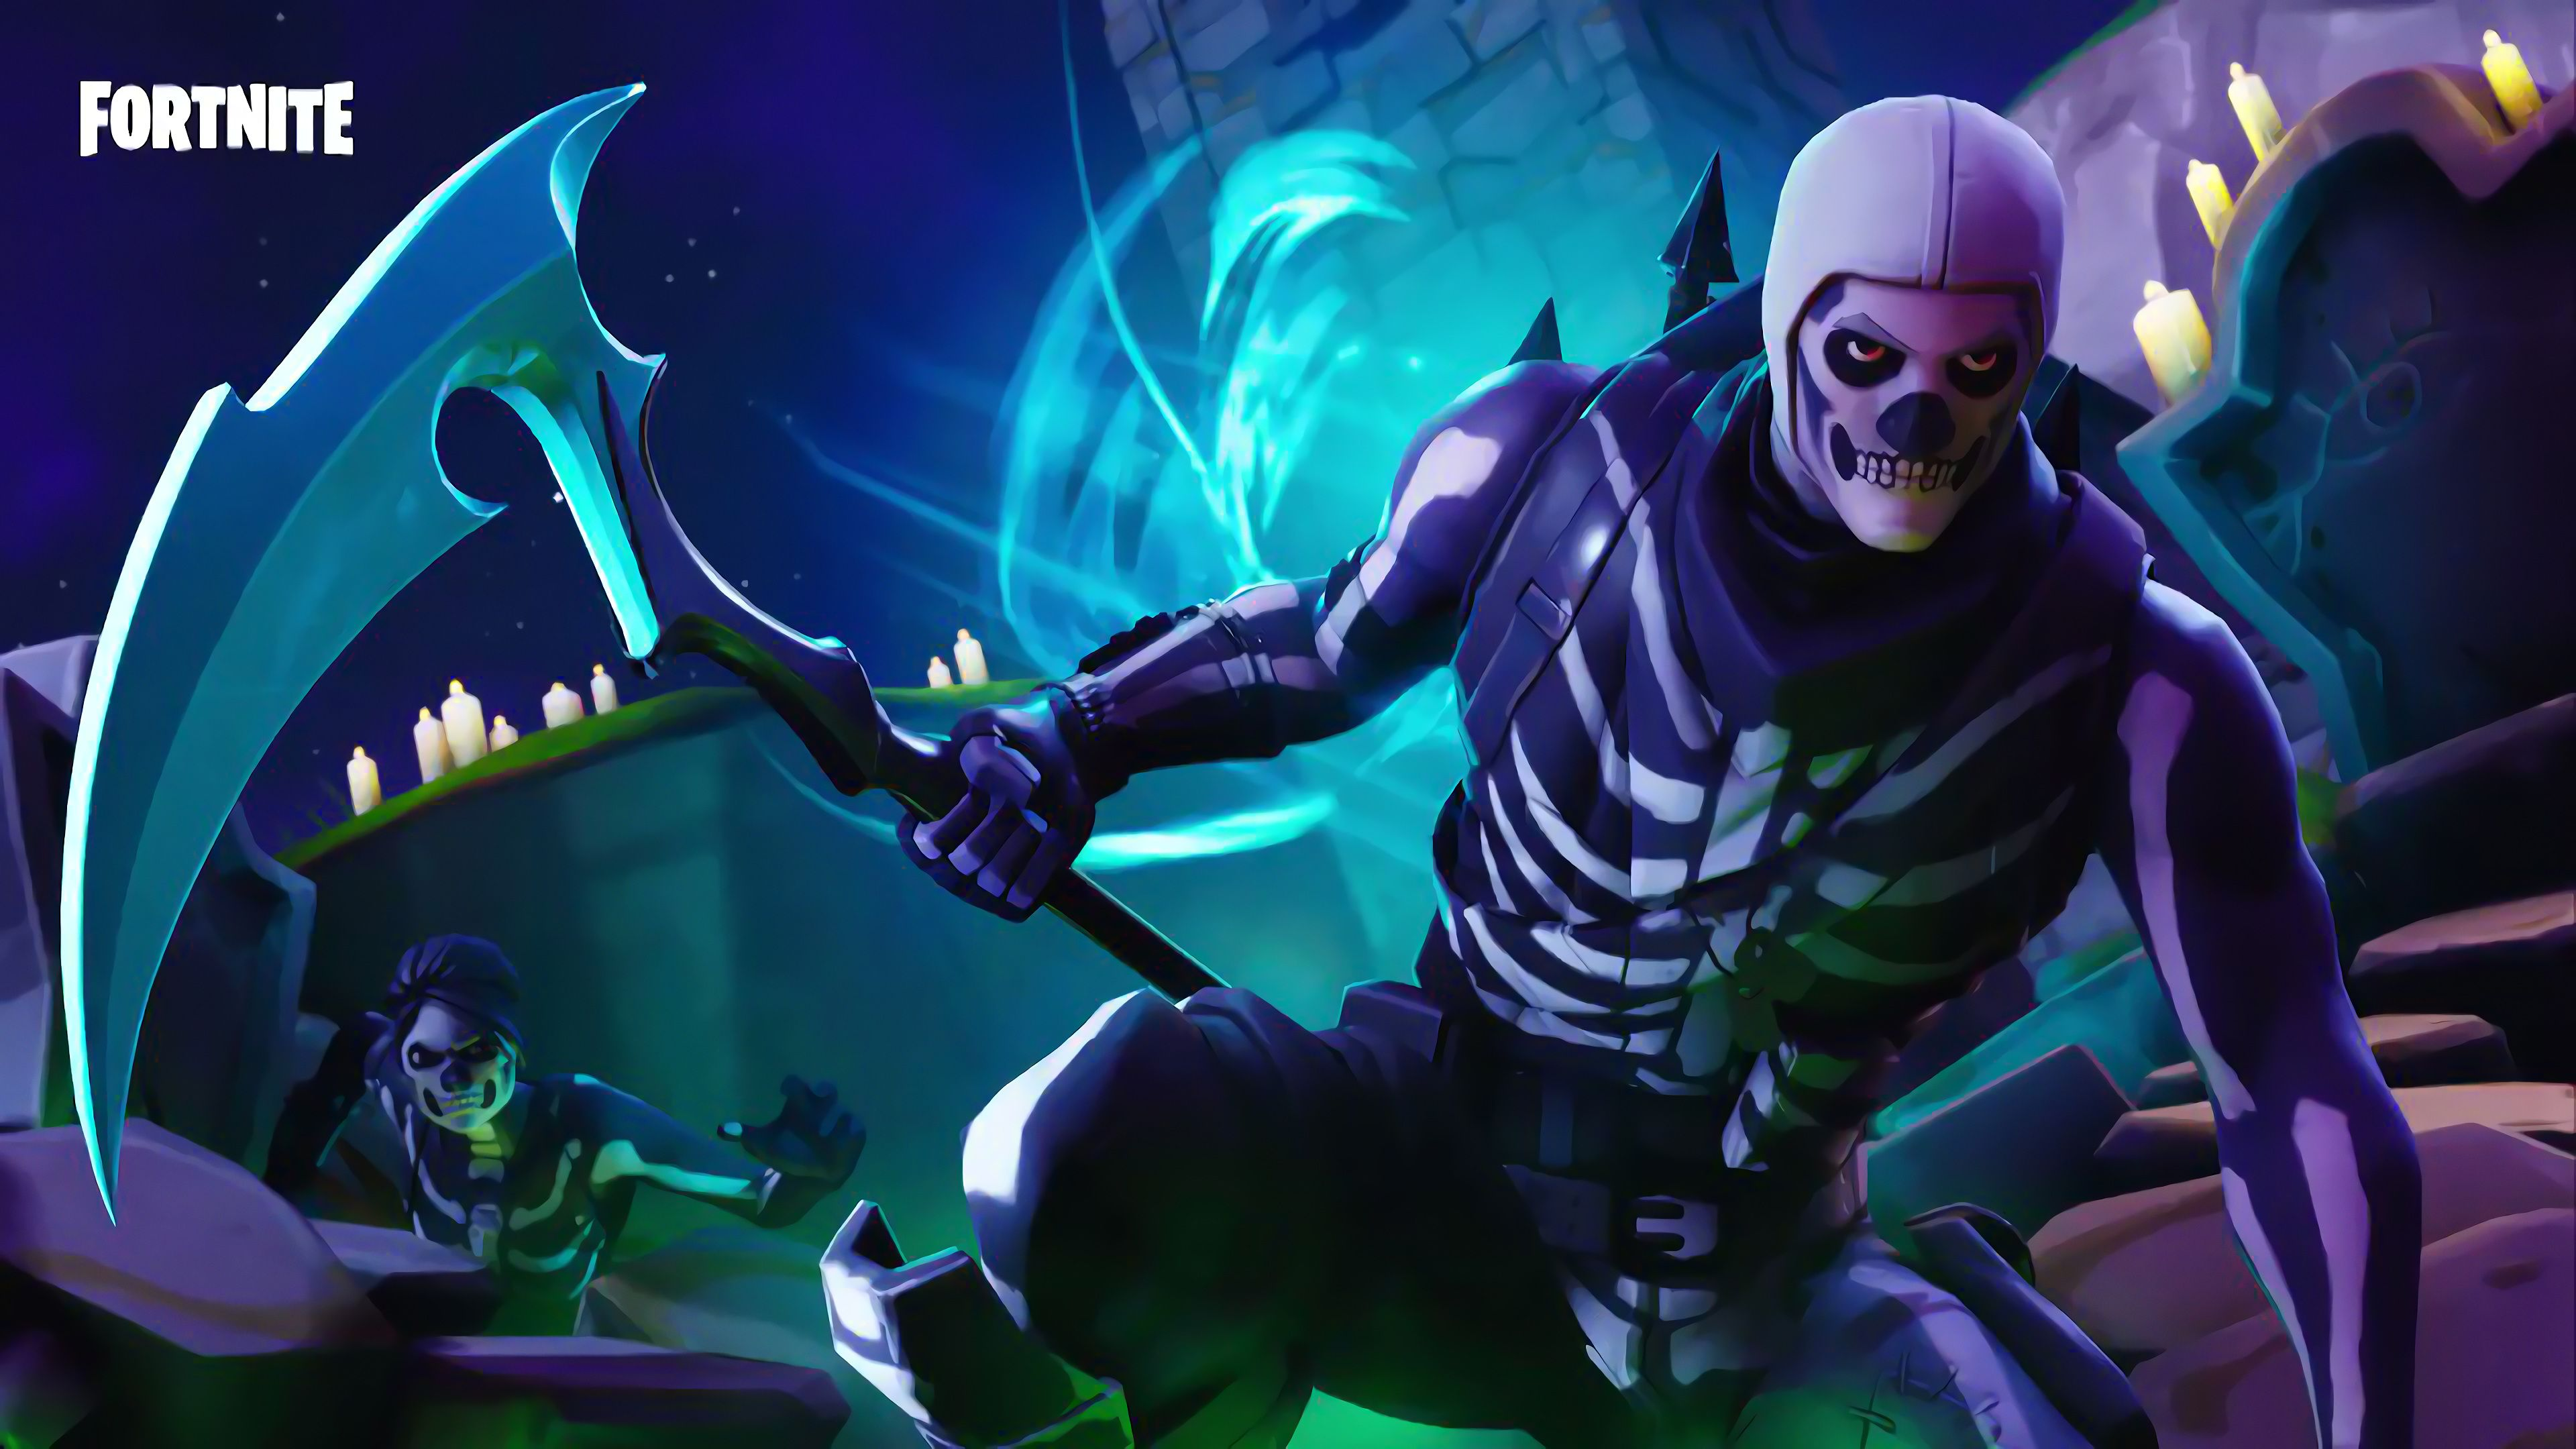 Skull Trooper and Skull Ranger Fortnite Battle Royale 4K 25281 3840x2160